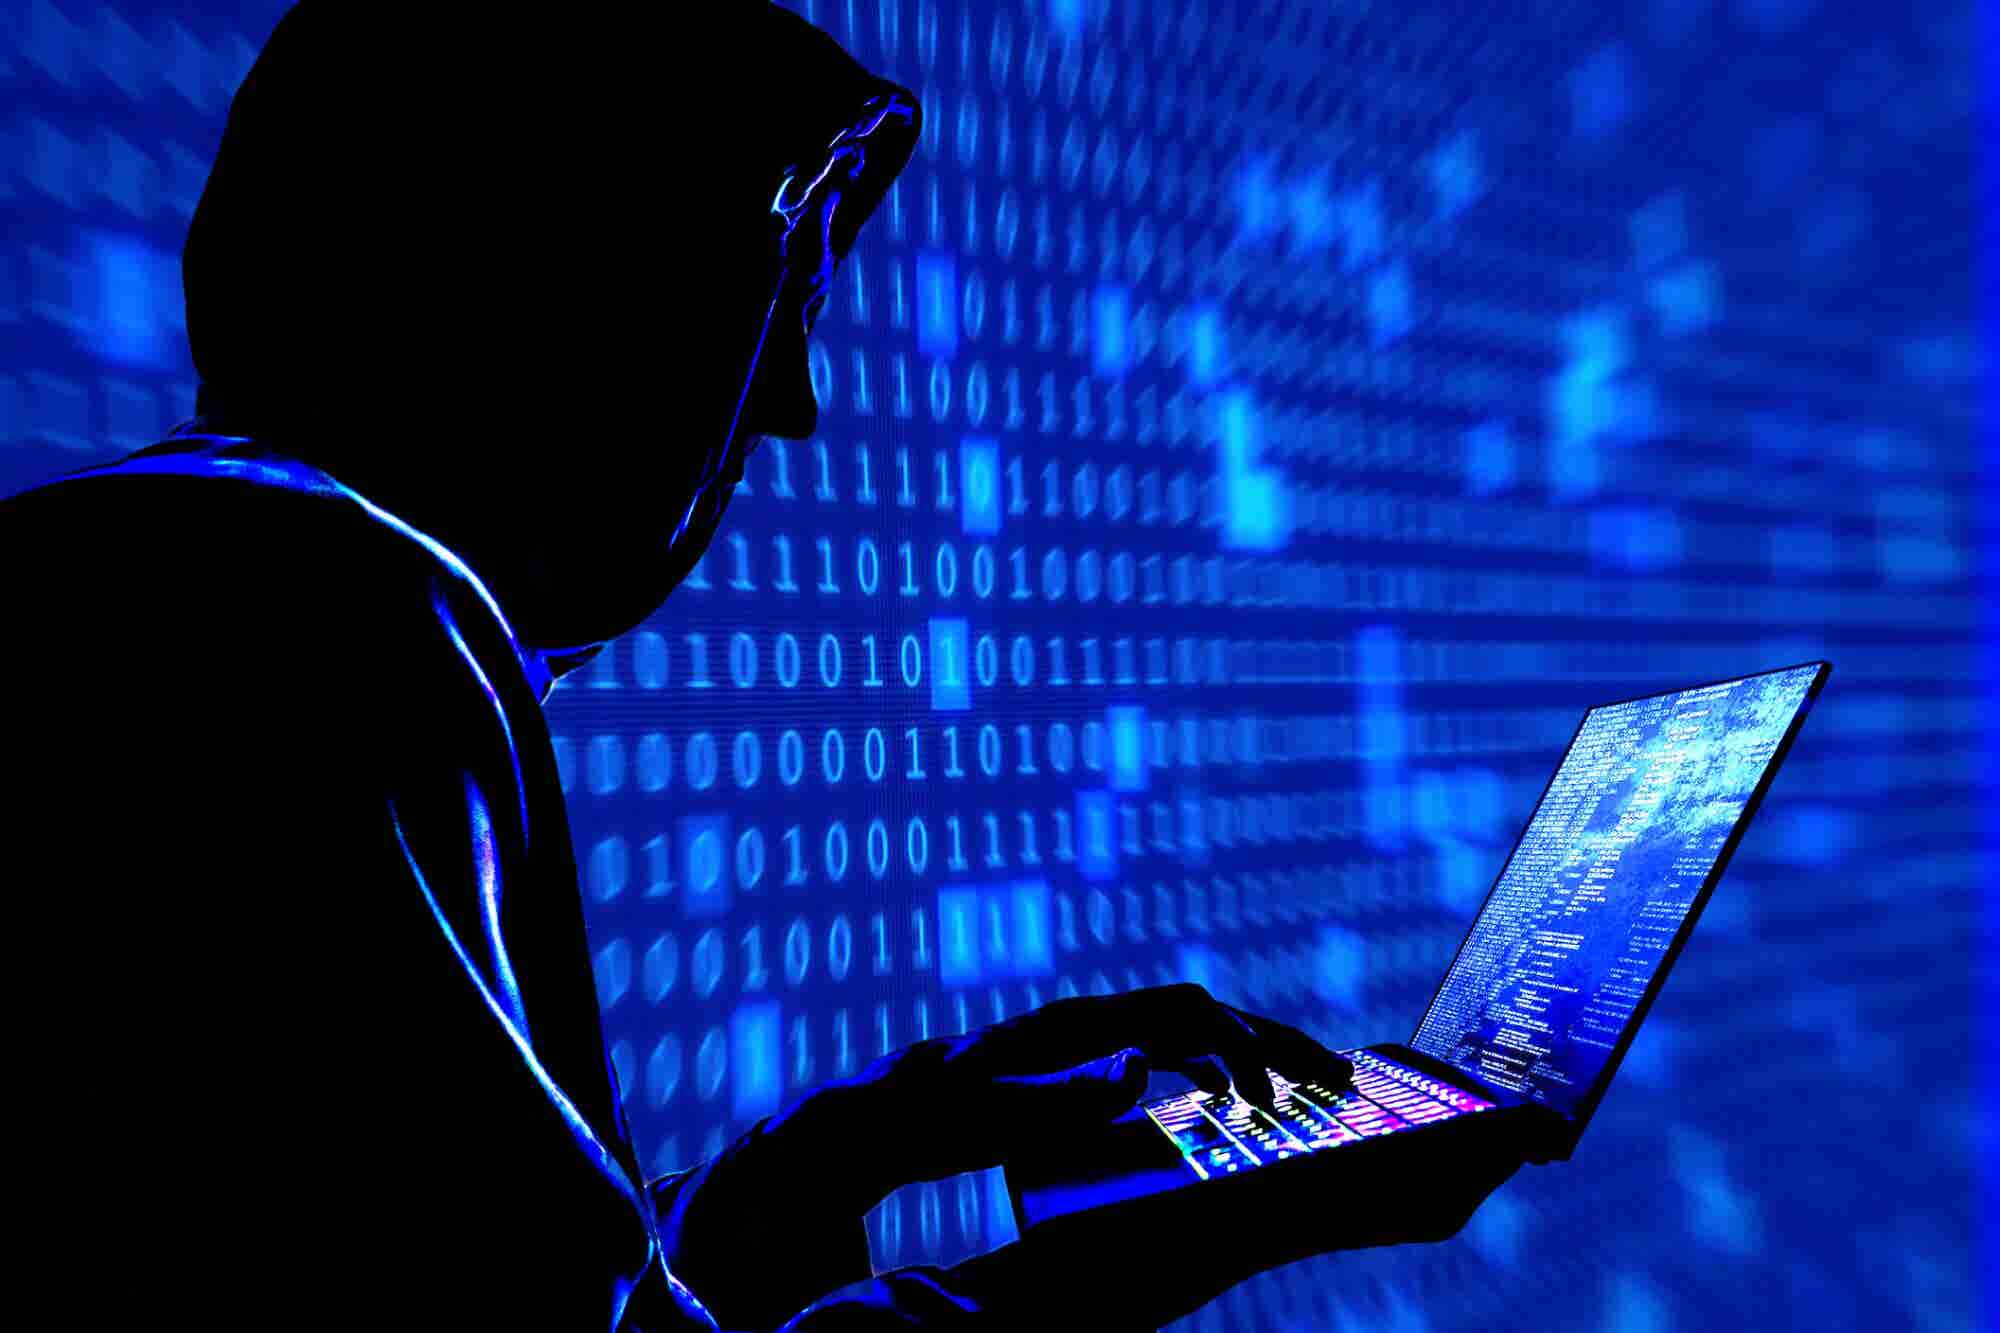 Your Cyber-Enemy May Not Be the Person You Suspect